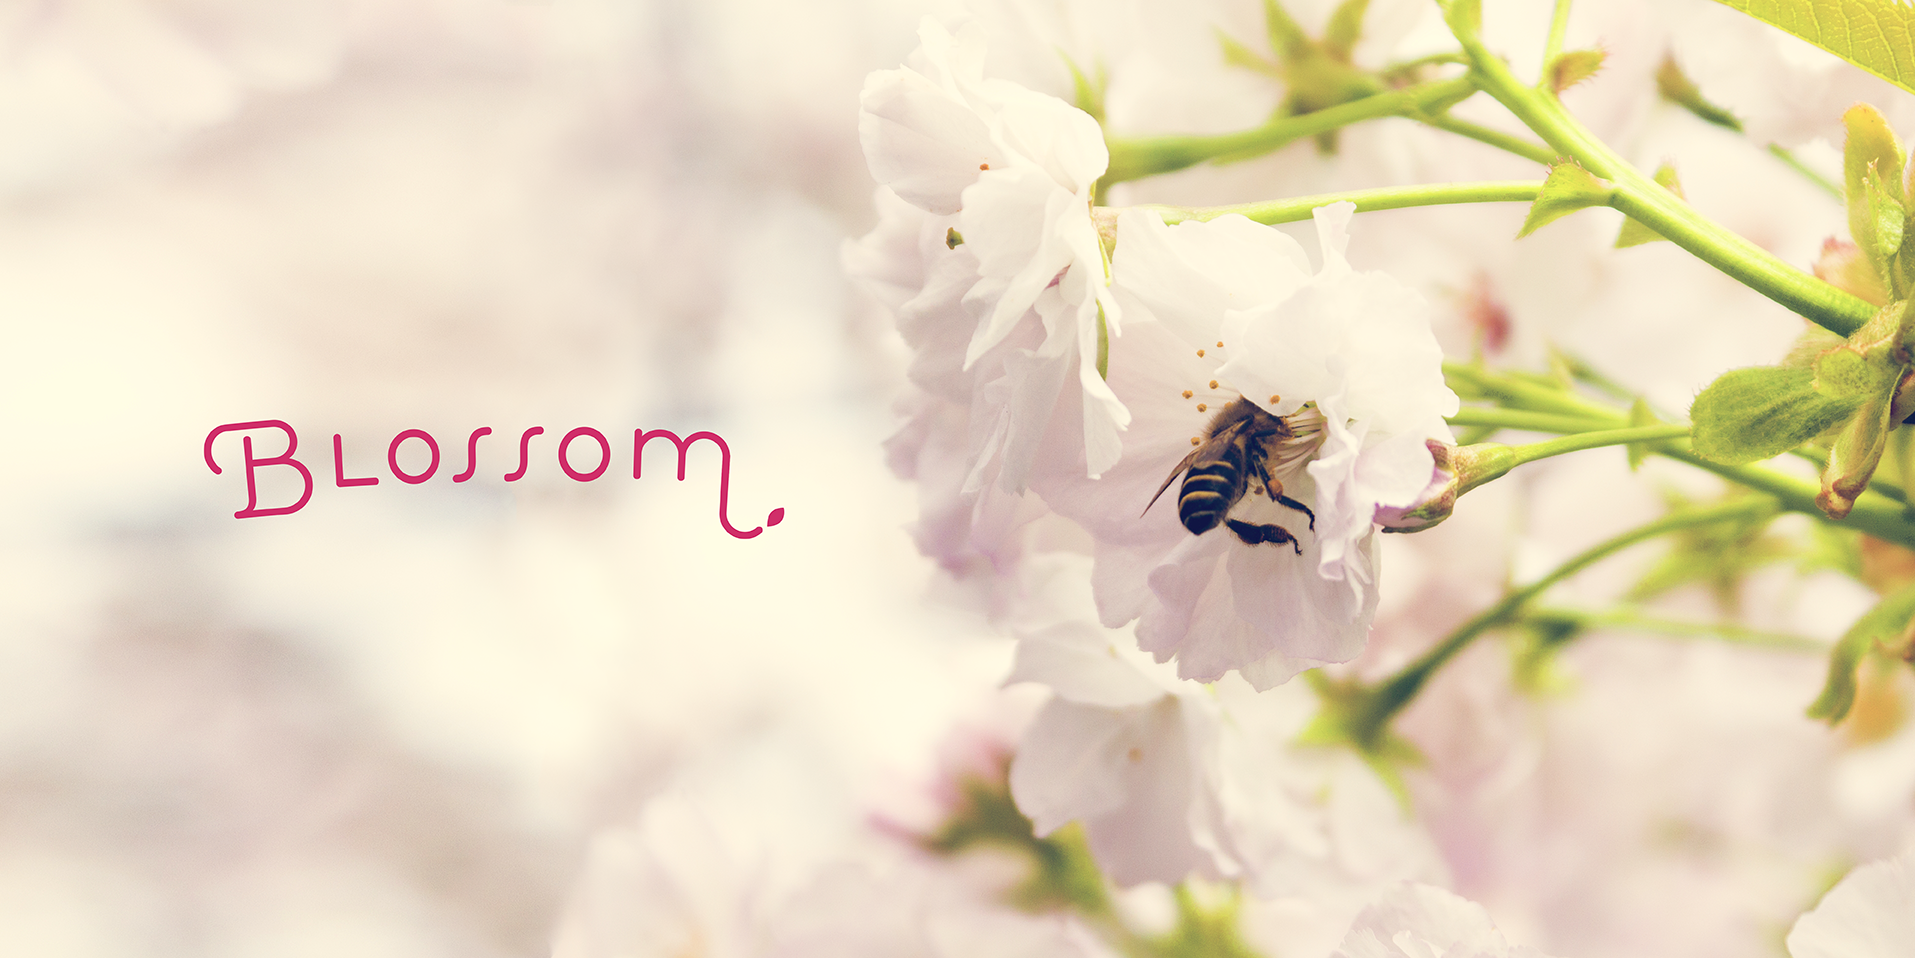 Blossom_01_A.png